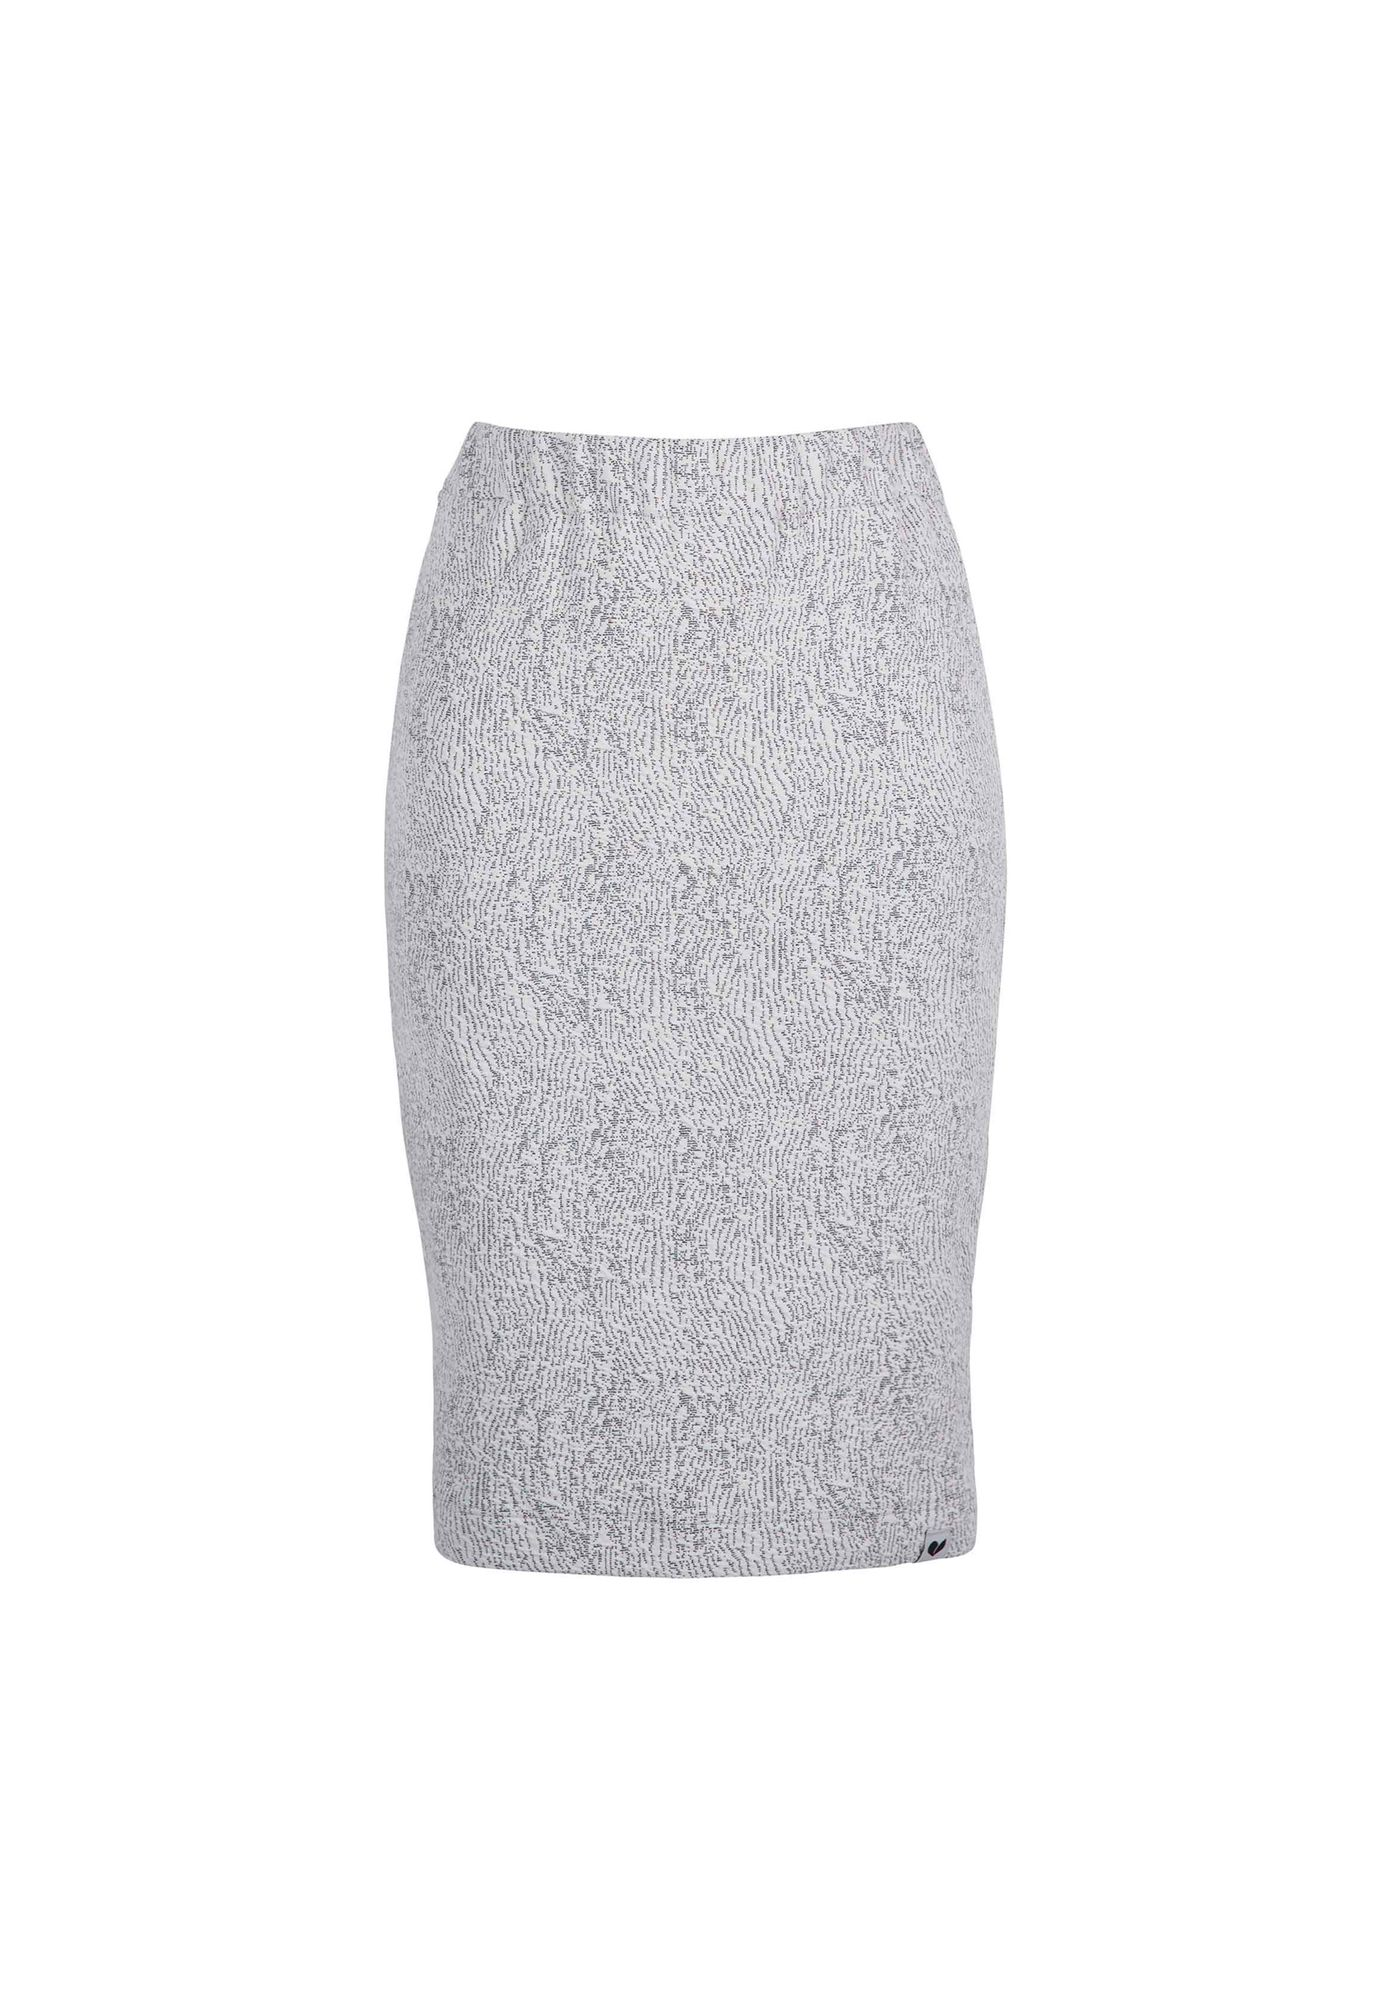 Skirt BLACKTHORN Relief Waves Ecru